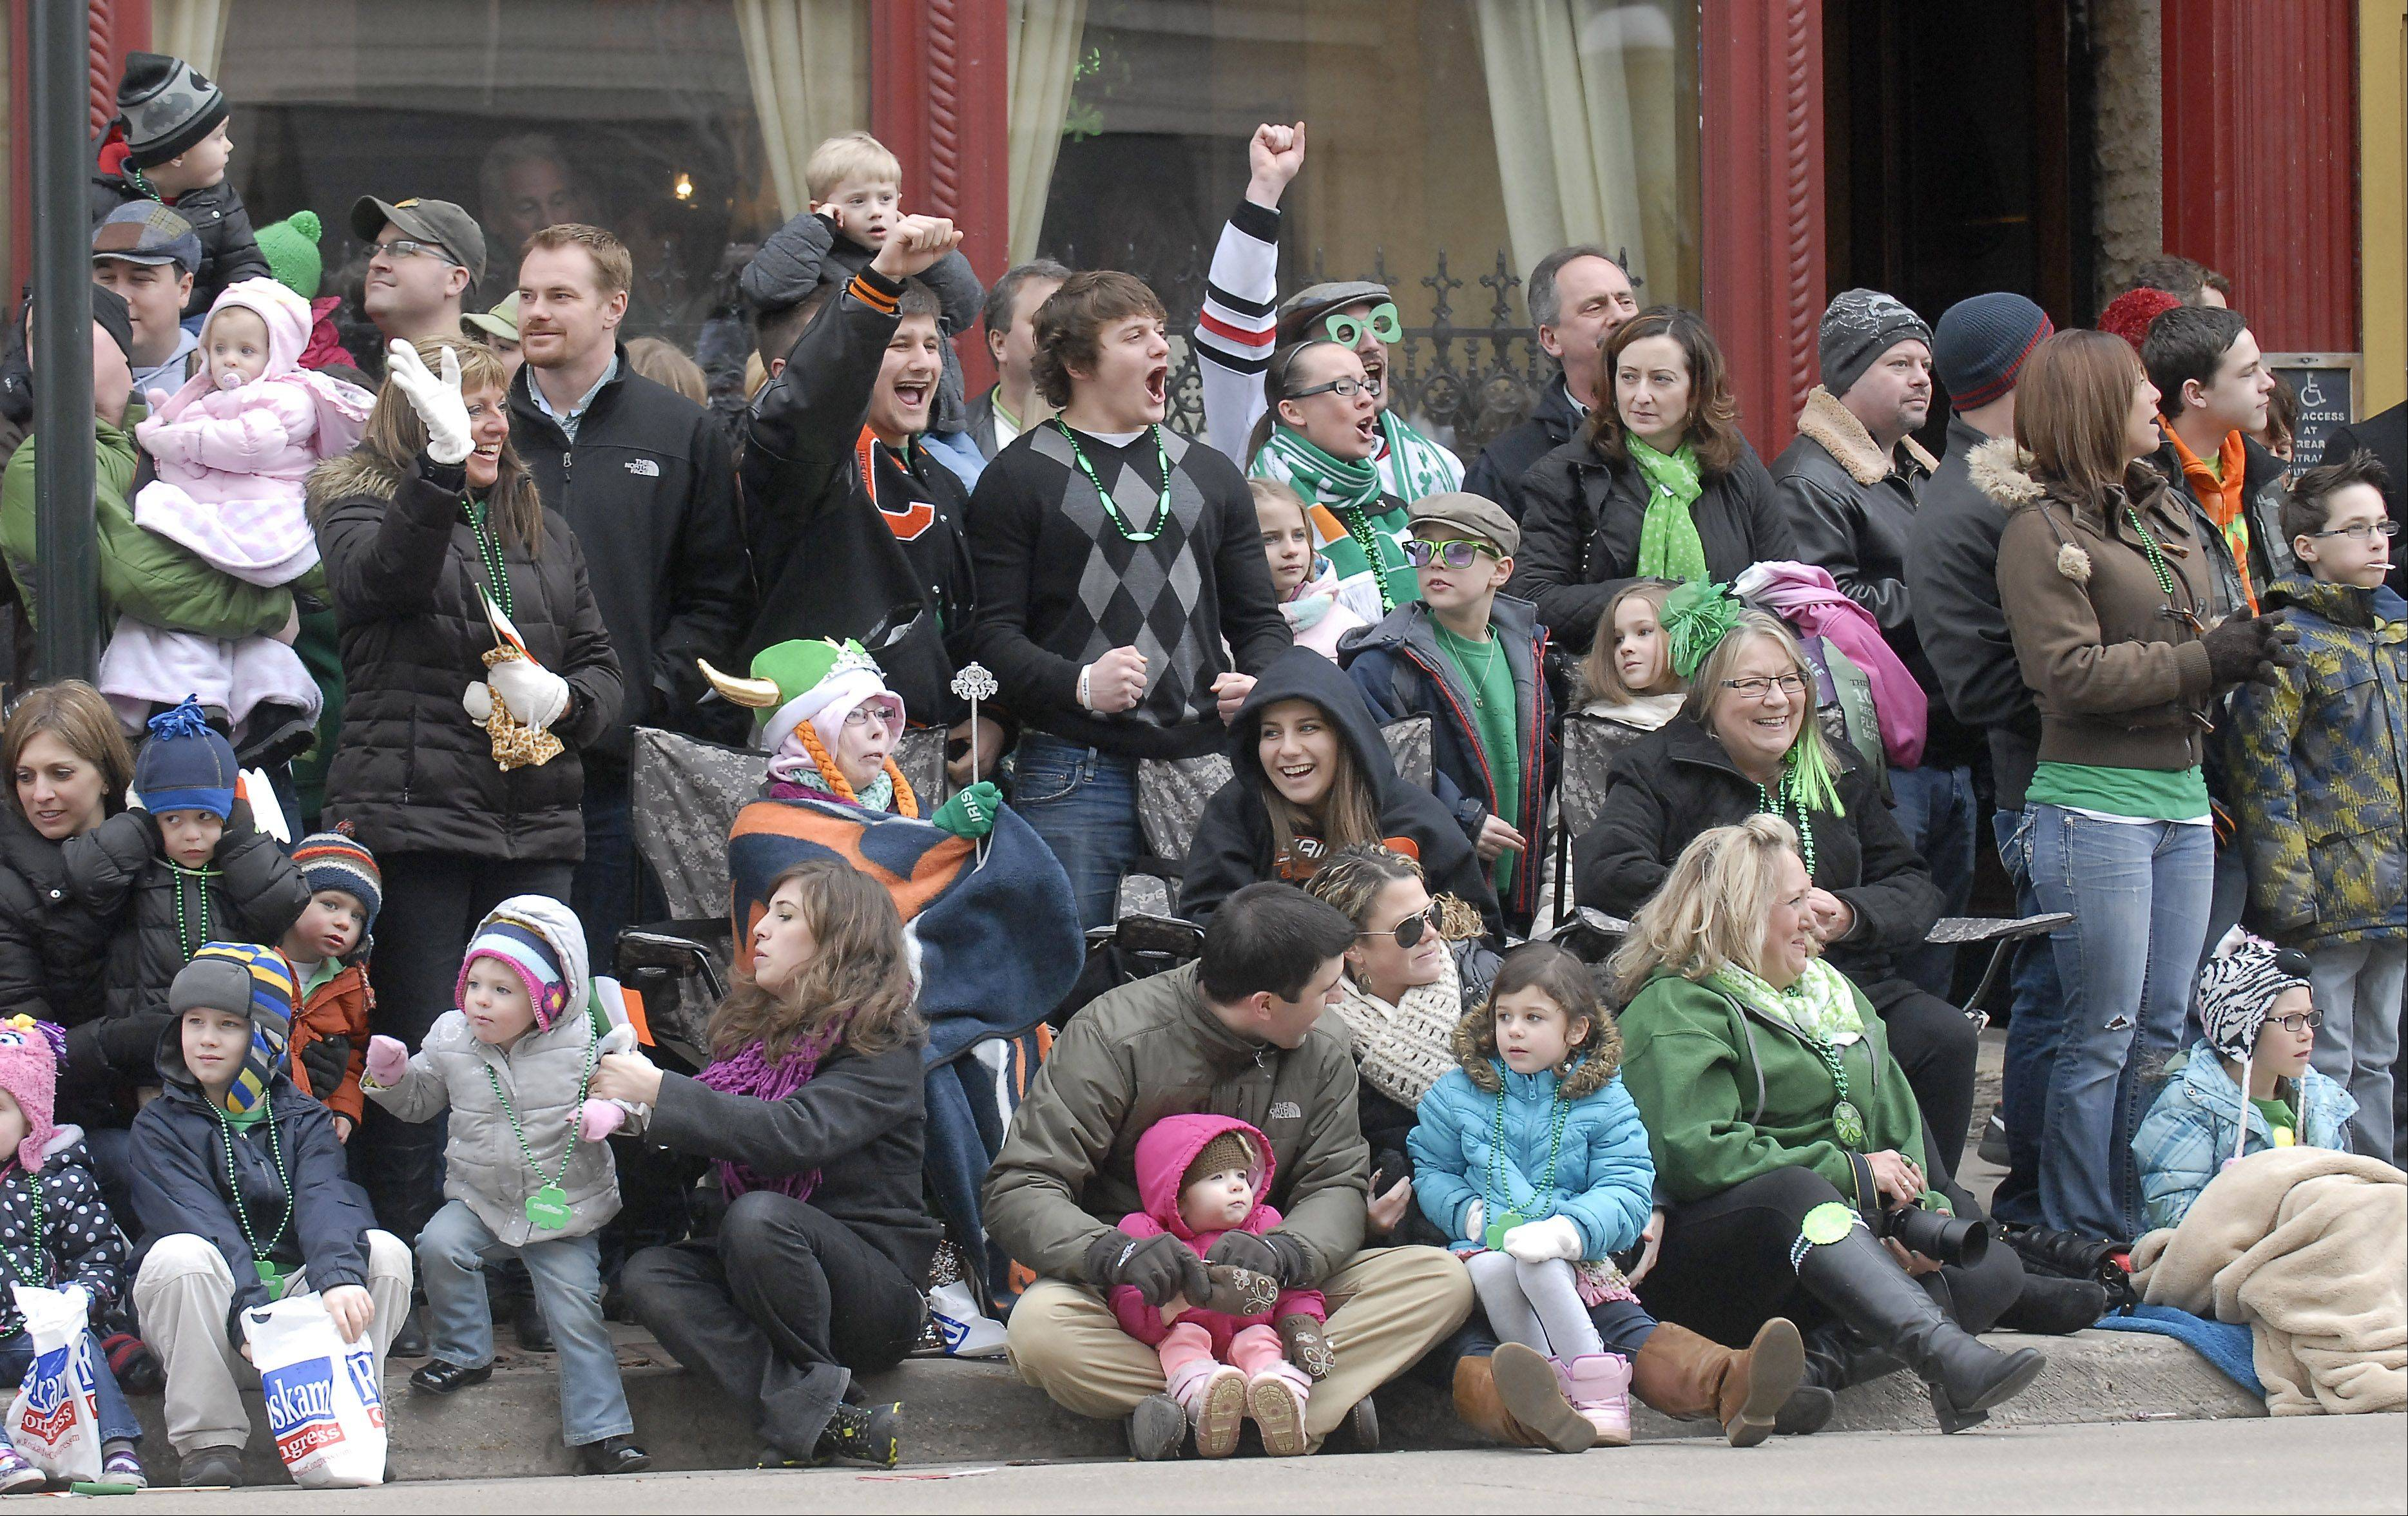 Crowds along Main Street enjoy the St. Patrick's Day parade in St. Charles Saturday.